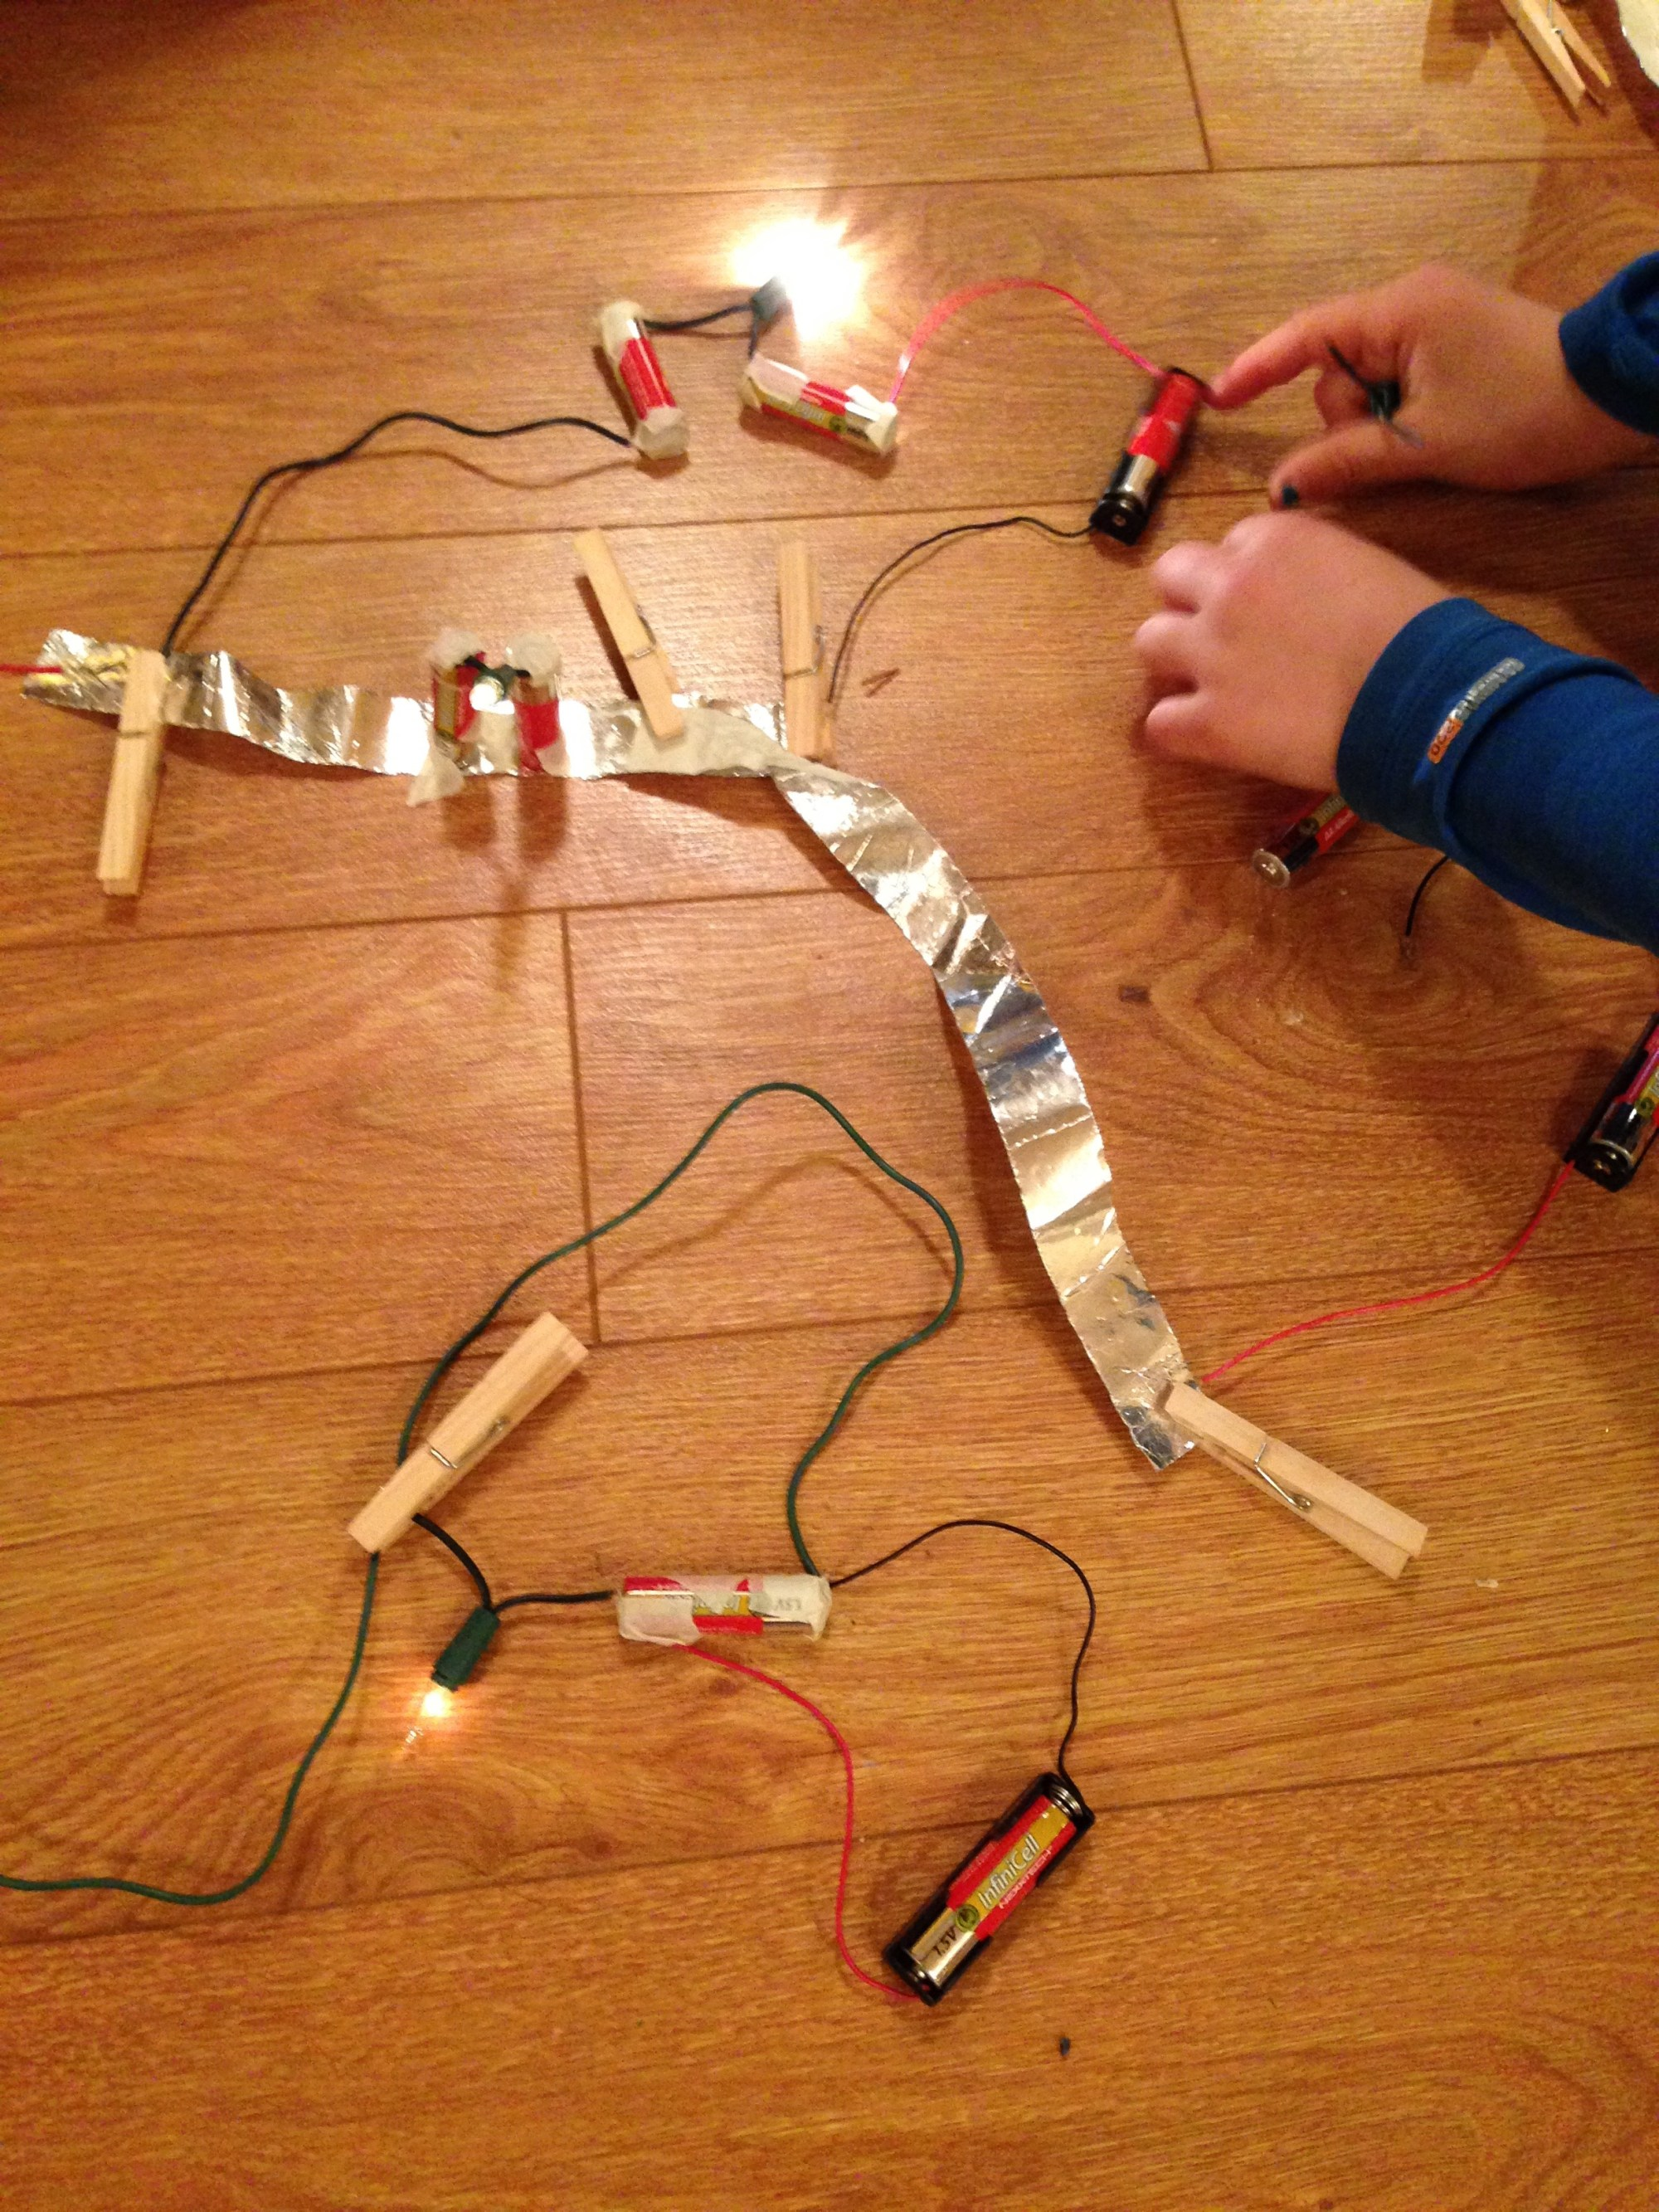 hight resolution of electric circuits with home made wires and bulbs